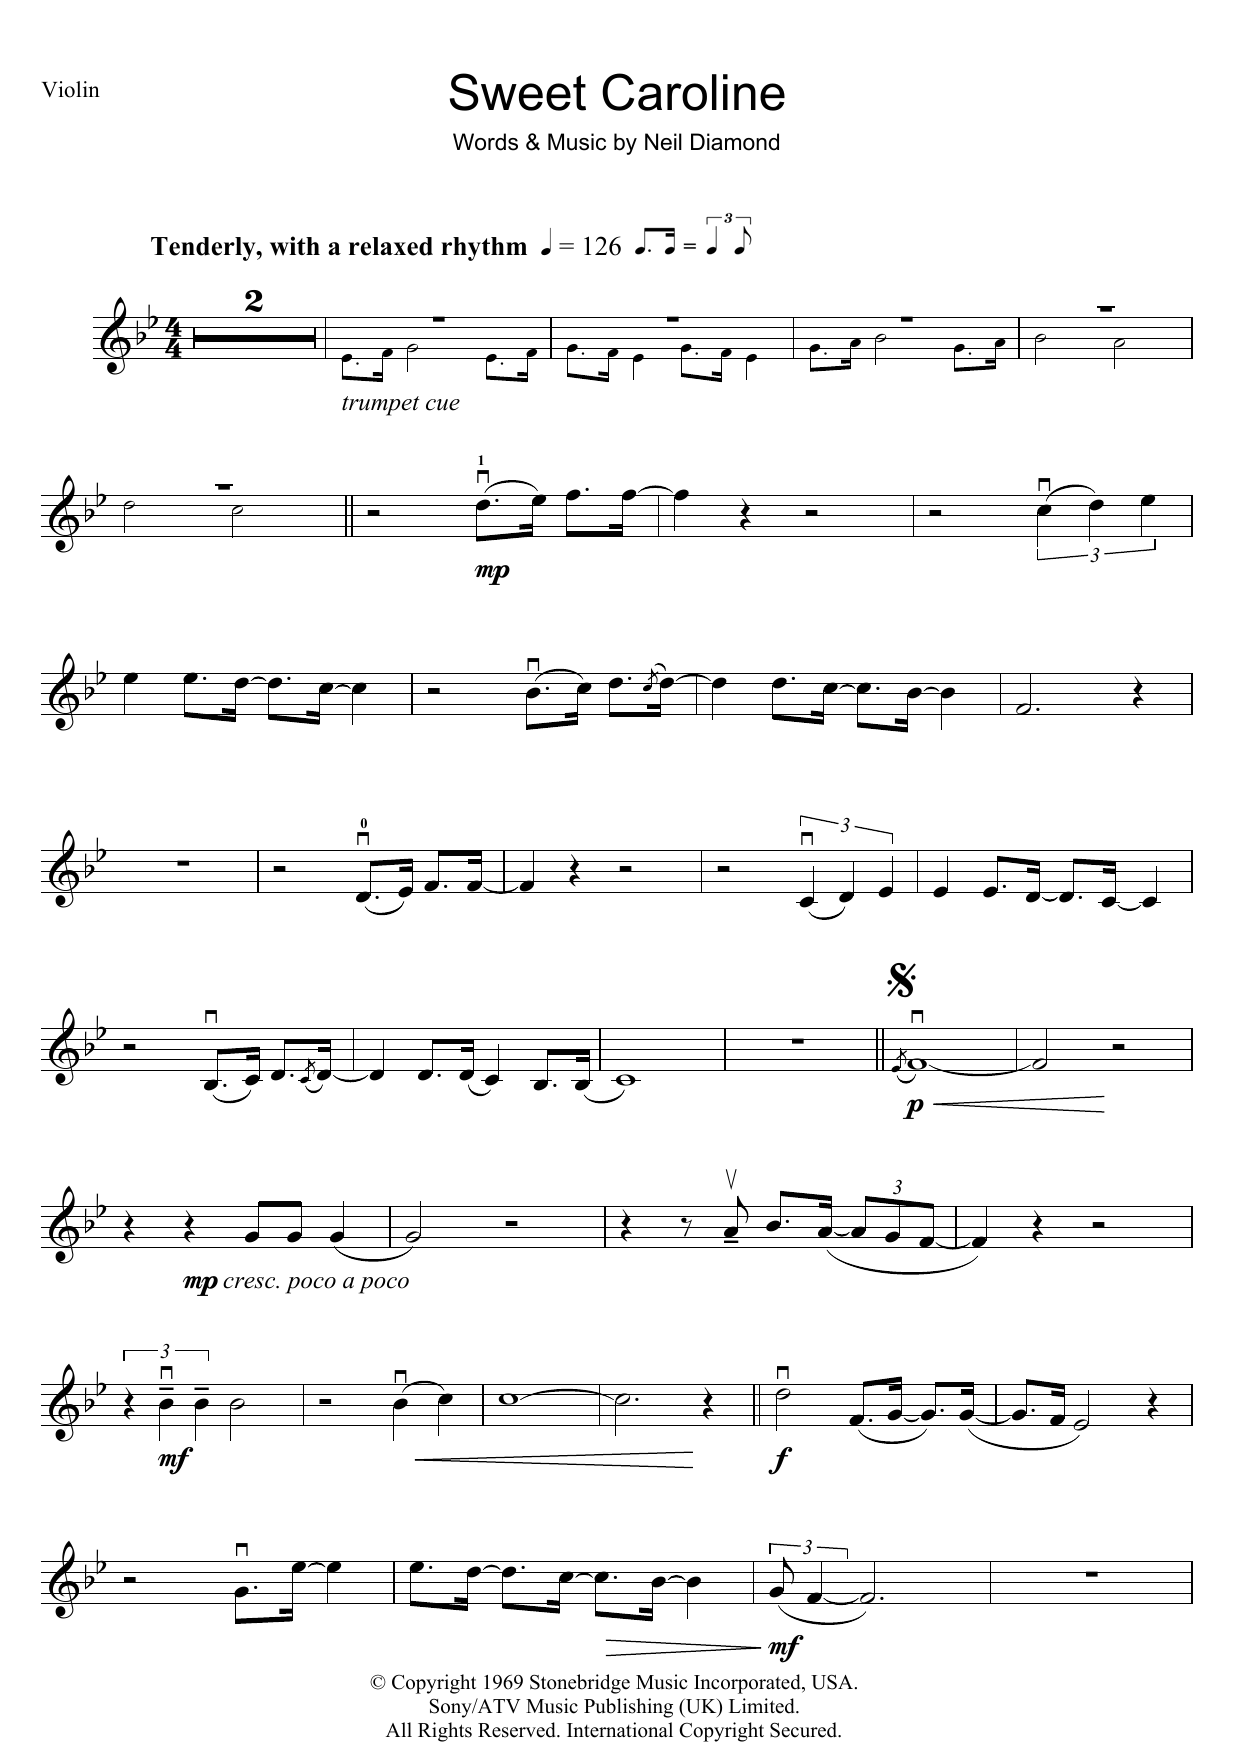 Sweet Caroline Sheet Music | Neil Diamond | Violin Solo